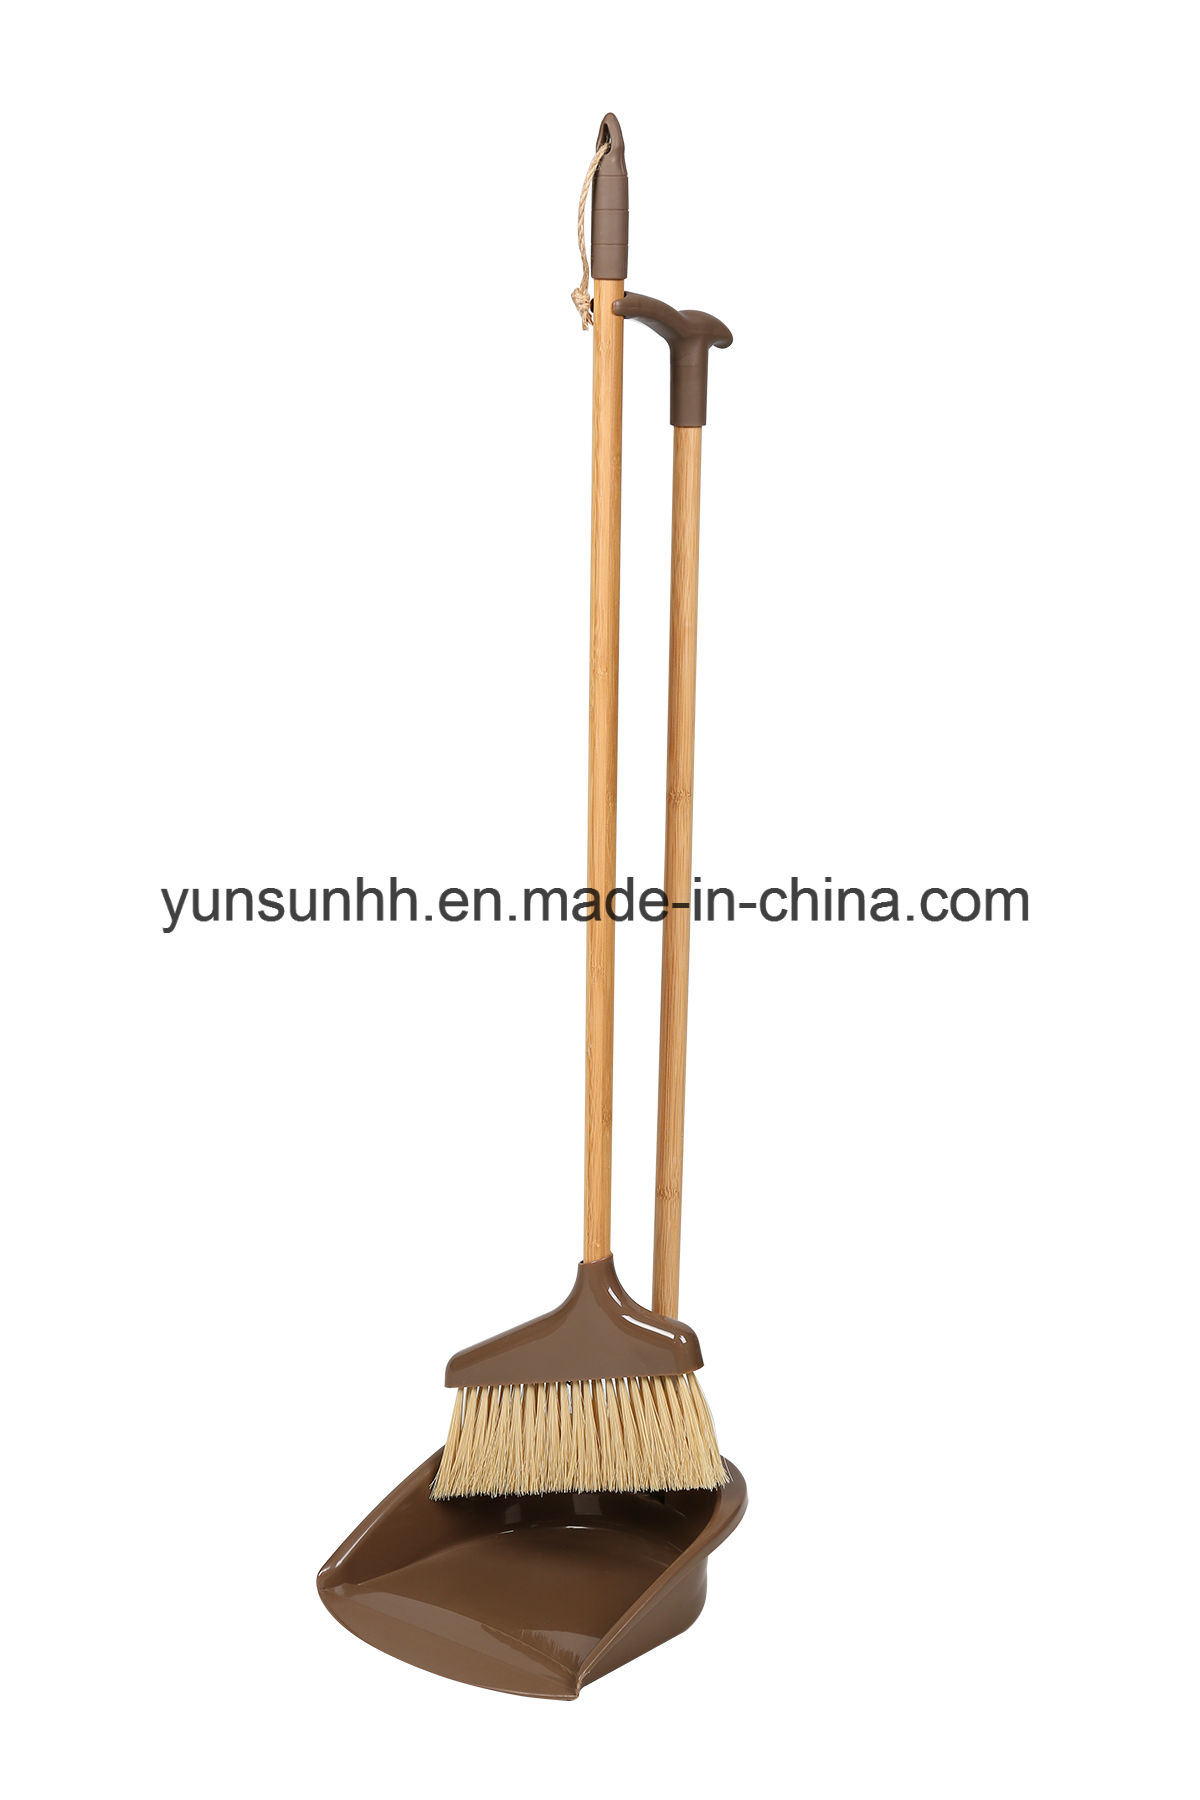 Floor Broom/Brush/Cleaner Set/ Dustpan& Brush Set, Gadren Cleaner Set